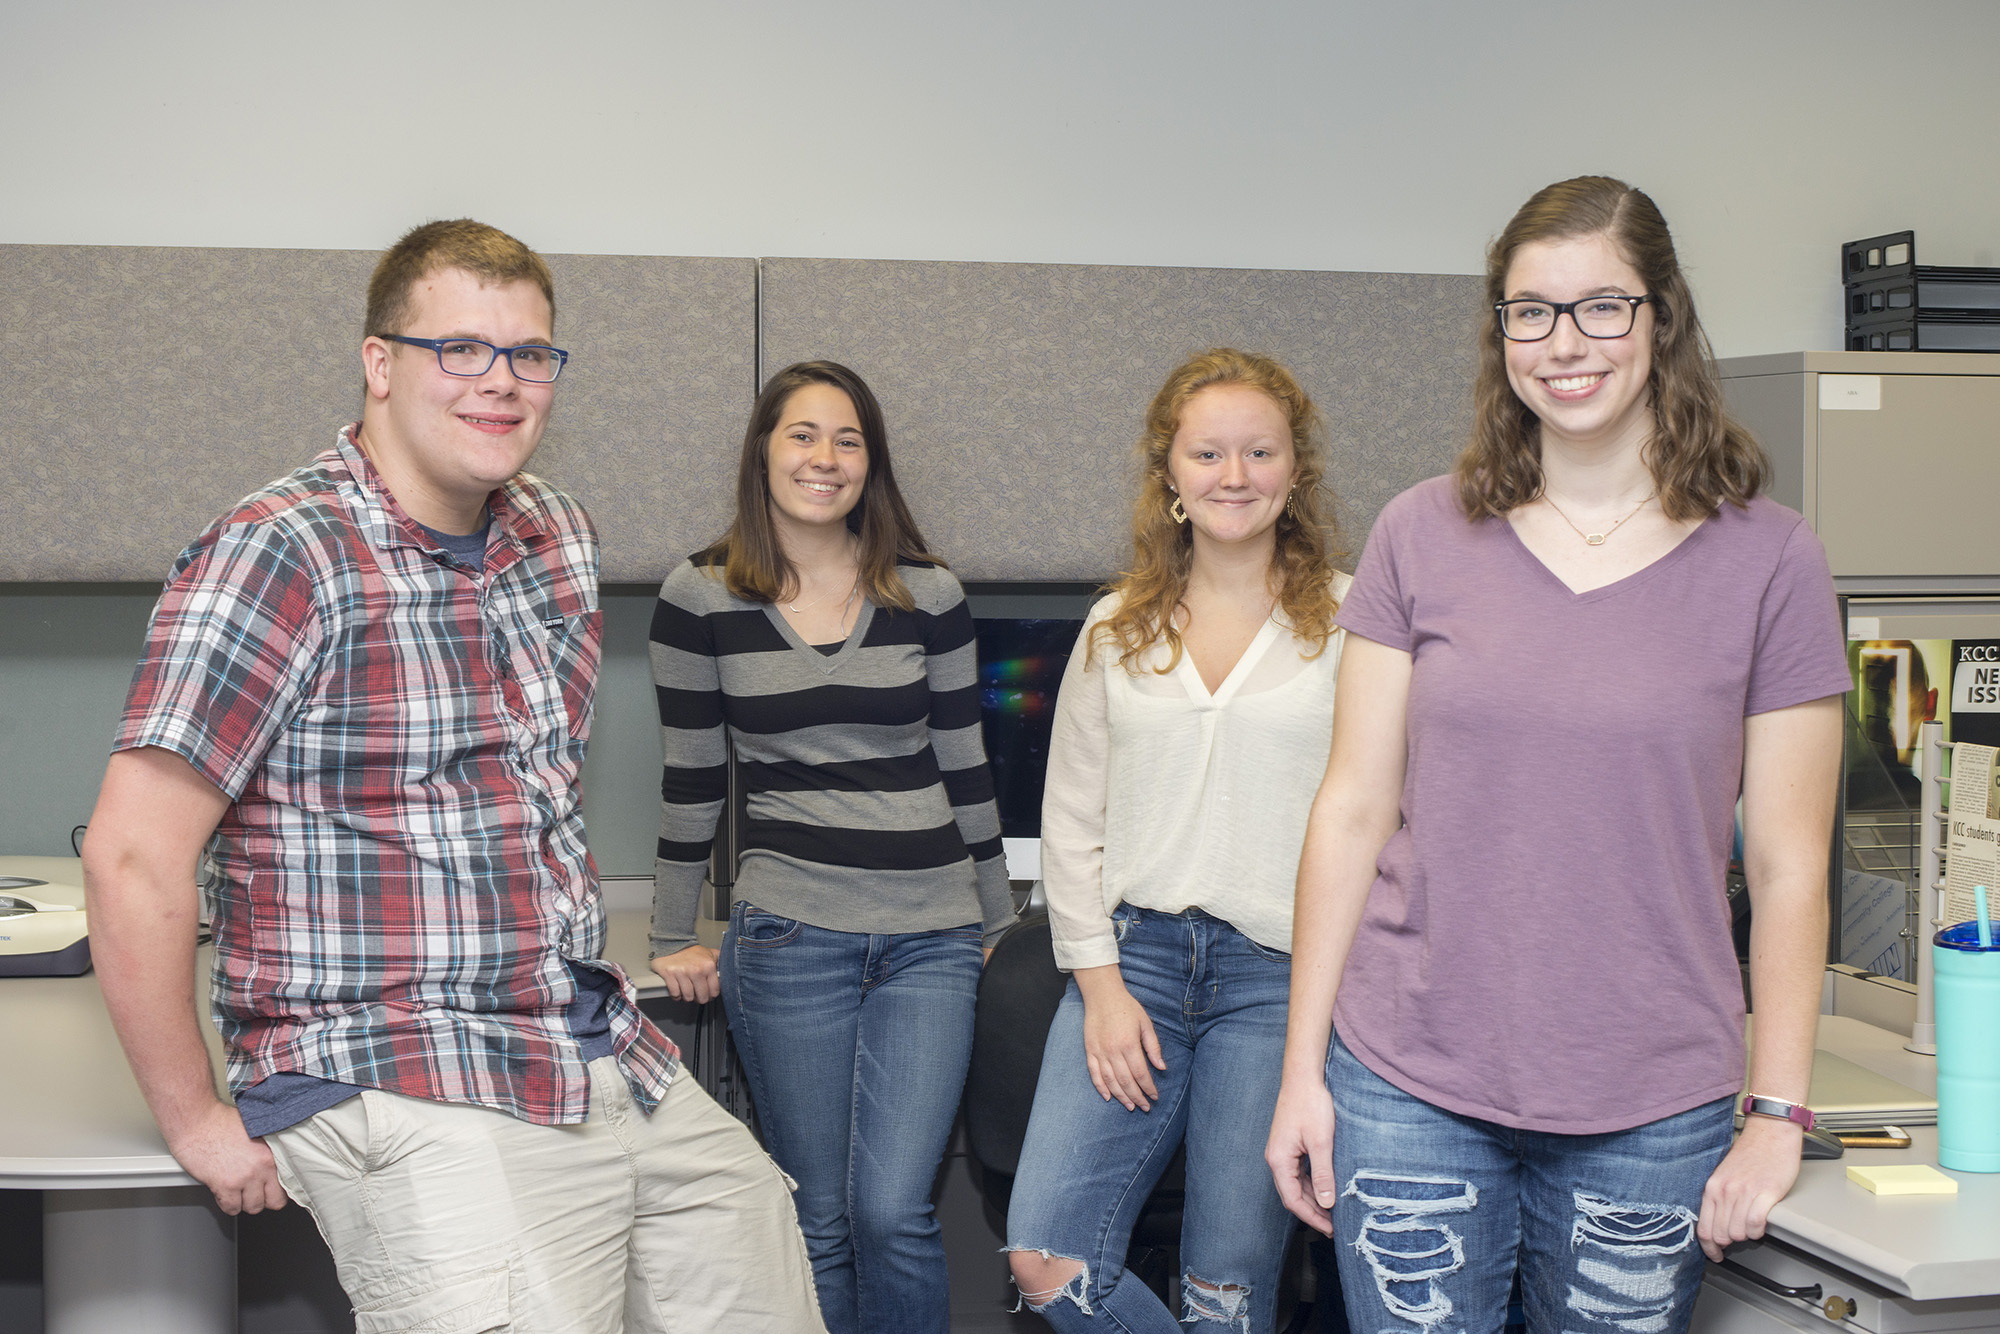 Pictured, from left to right, are Bruin News staff writers Seth Allred and Mackenzie Ryder, Managing Editor Taylor Vrooman and Public Editor Sarah Hubbard.